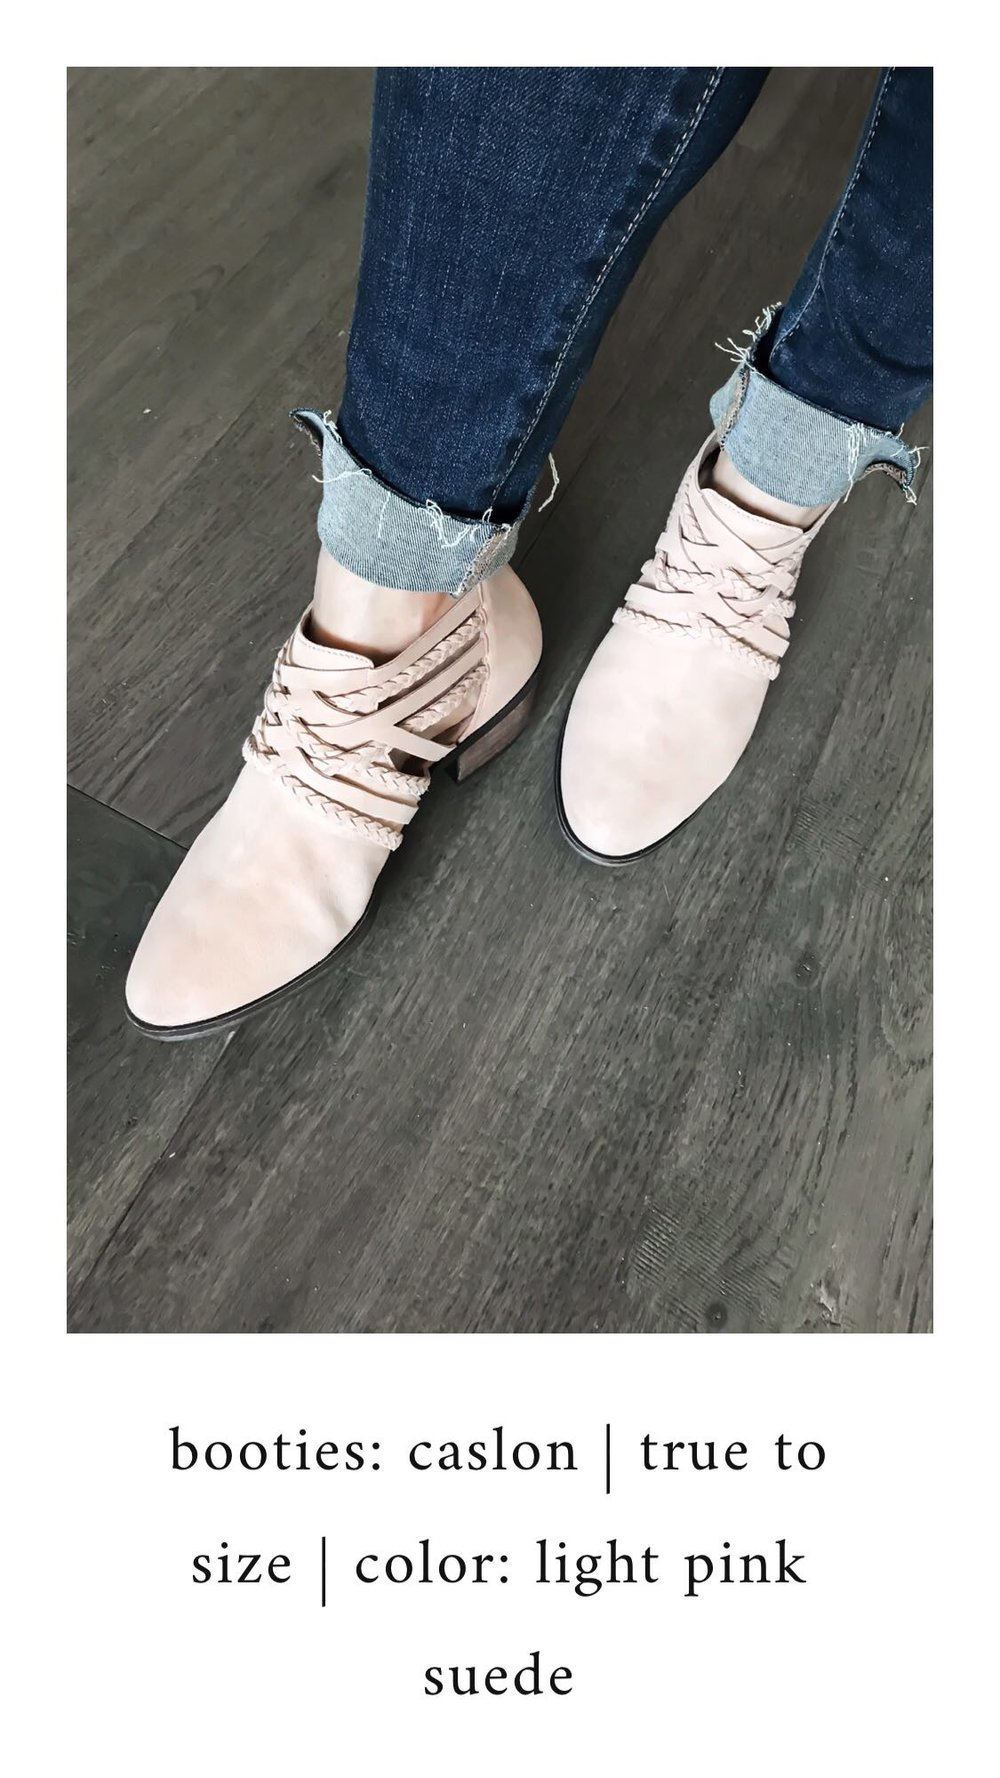 Nordstrom Anniversary Sale 2018: What I Purchased | Pine Barren Beauty | Caslon booties, light pink booties, braided booties, blush booties, fall shoes